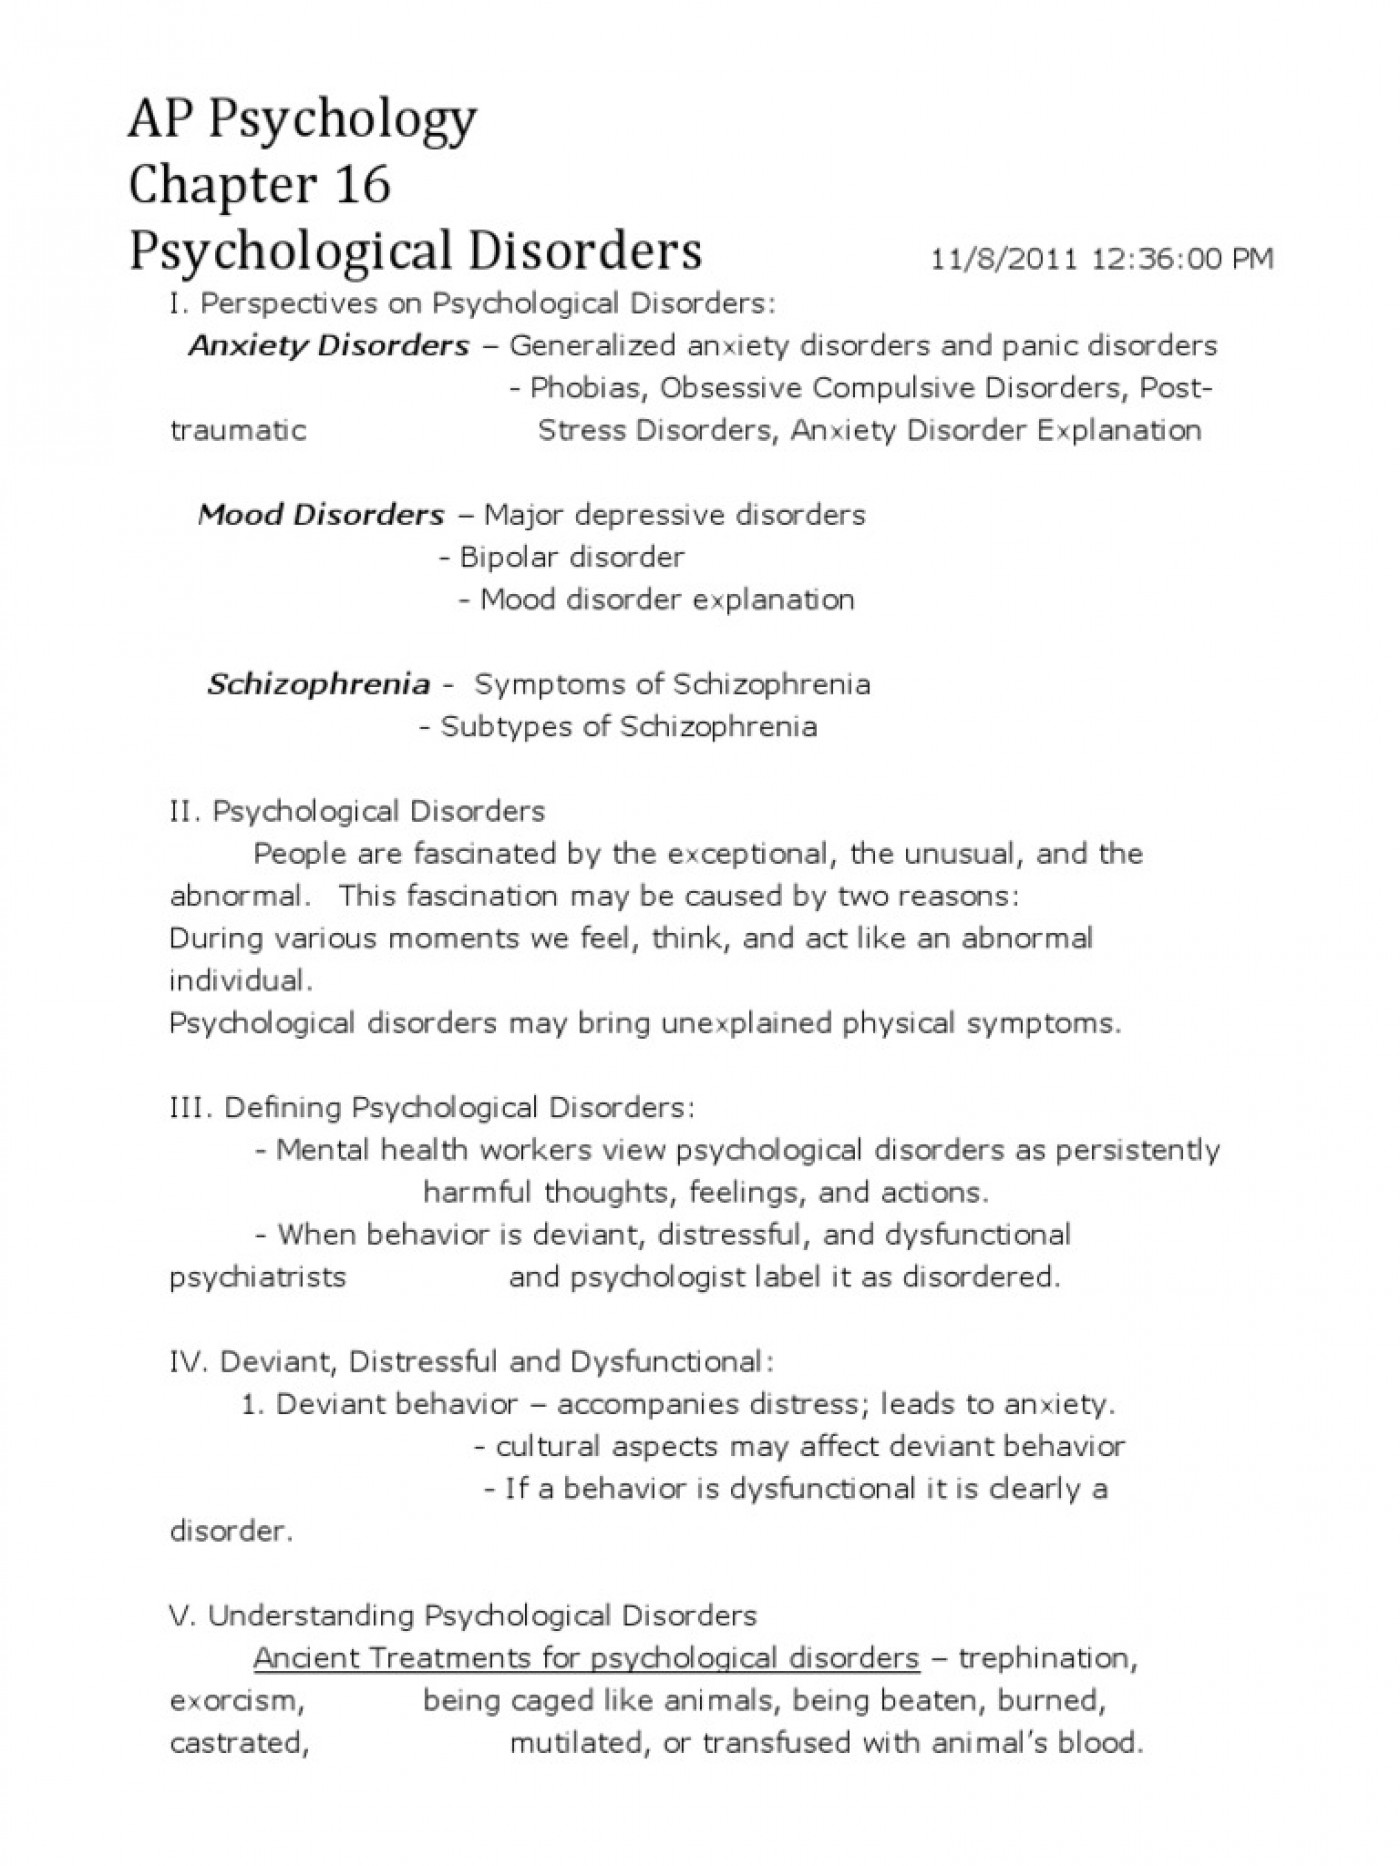 007 Research Paper Bipolar Disorder Essay Topics Title Pdf College Introduction Question Conclusion Examples Outline Rare Psychology 1400